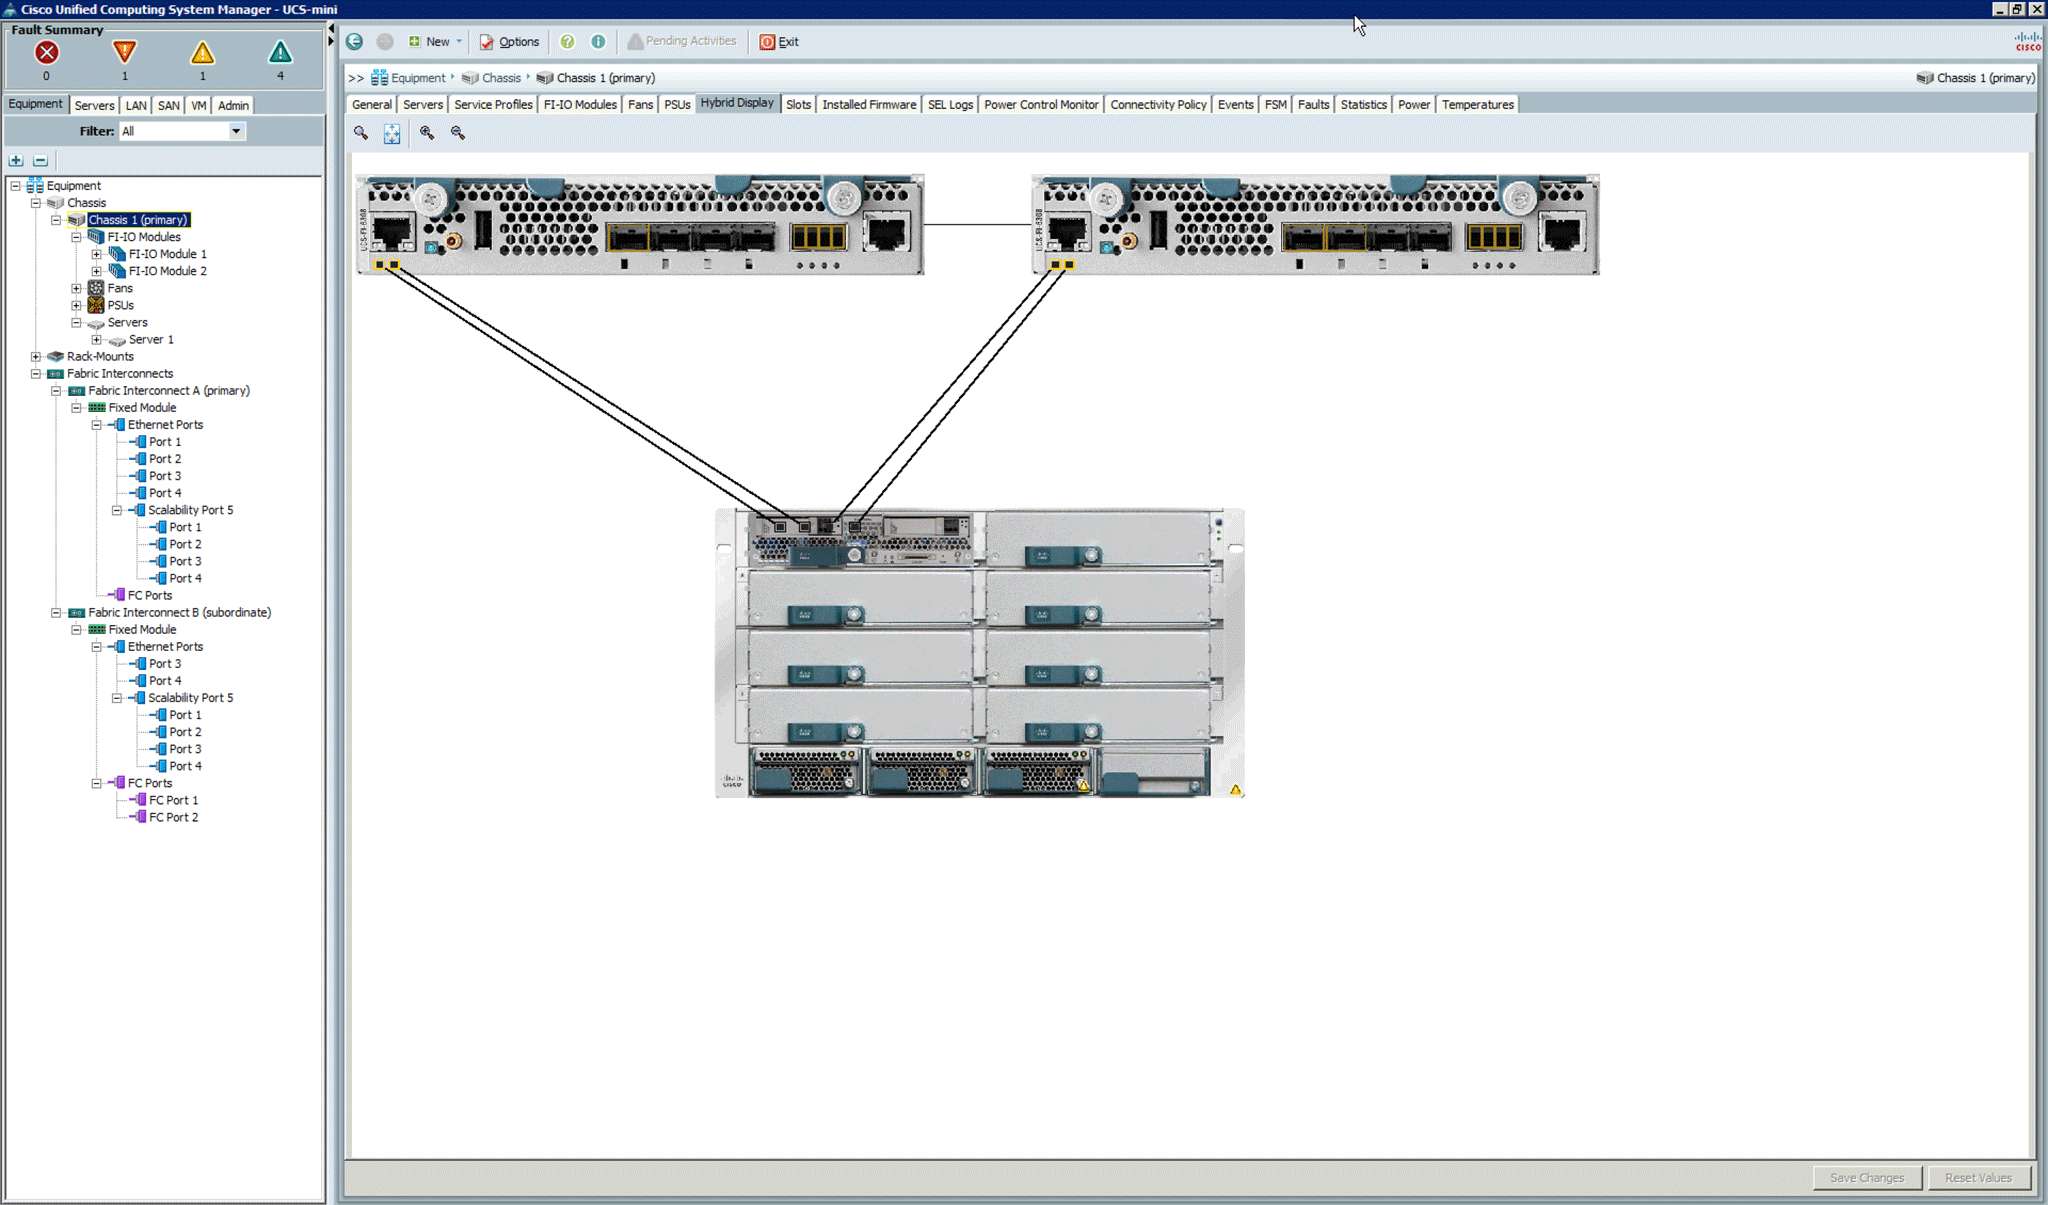 cisco ucs diagram wiring for switch and two lights mini version of review part 1 lostdomain